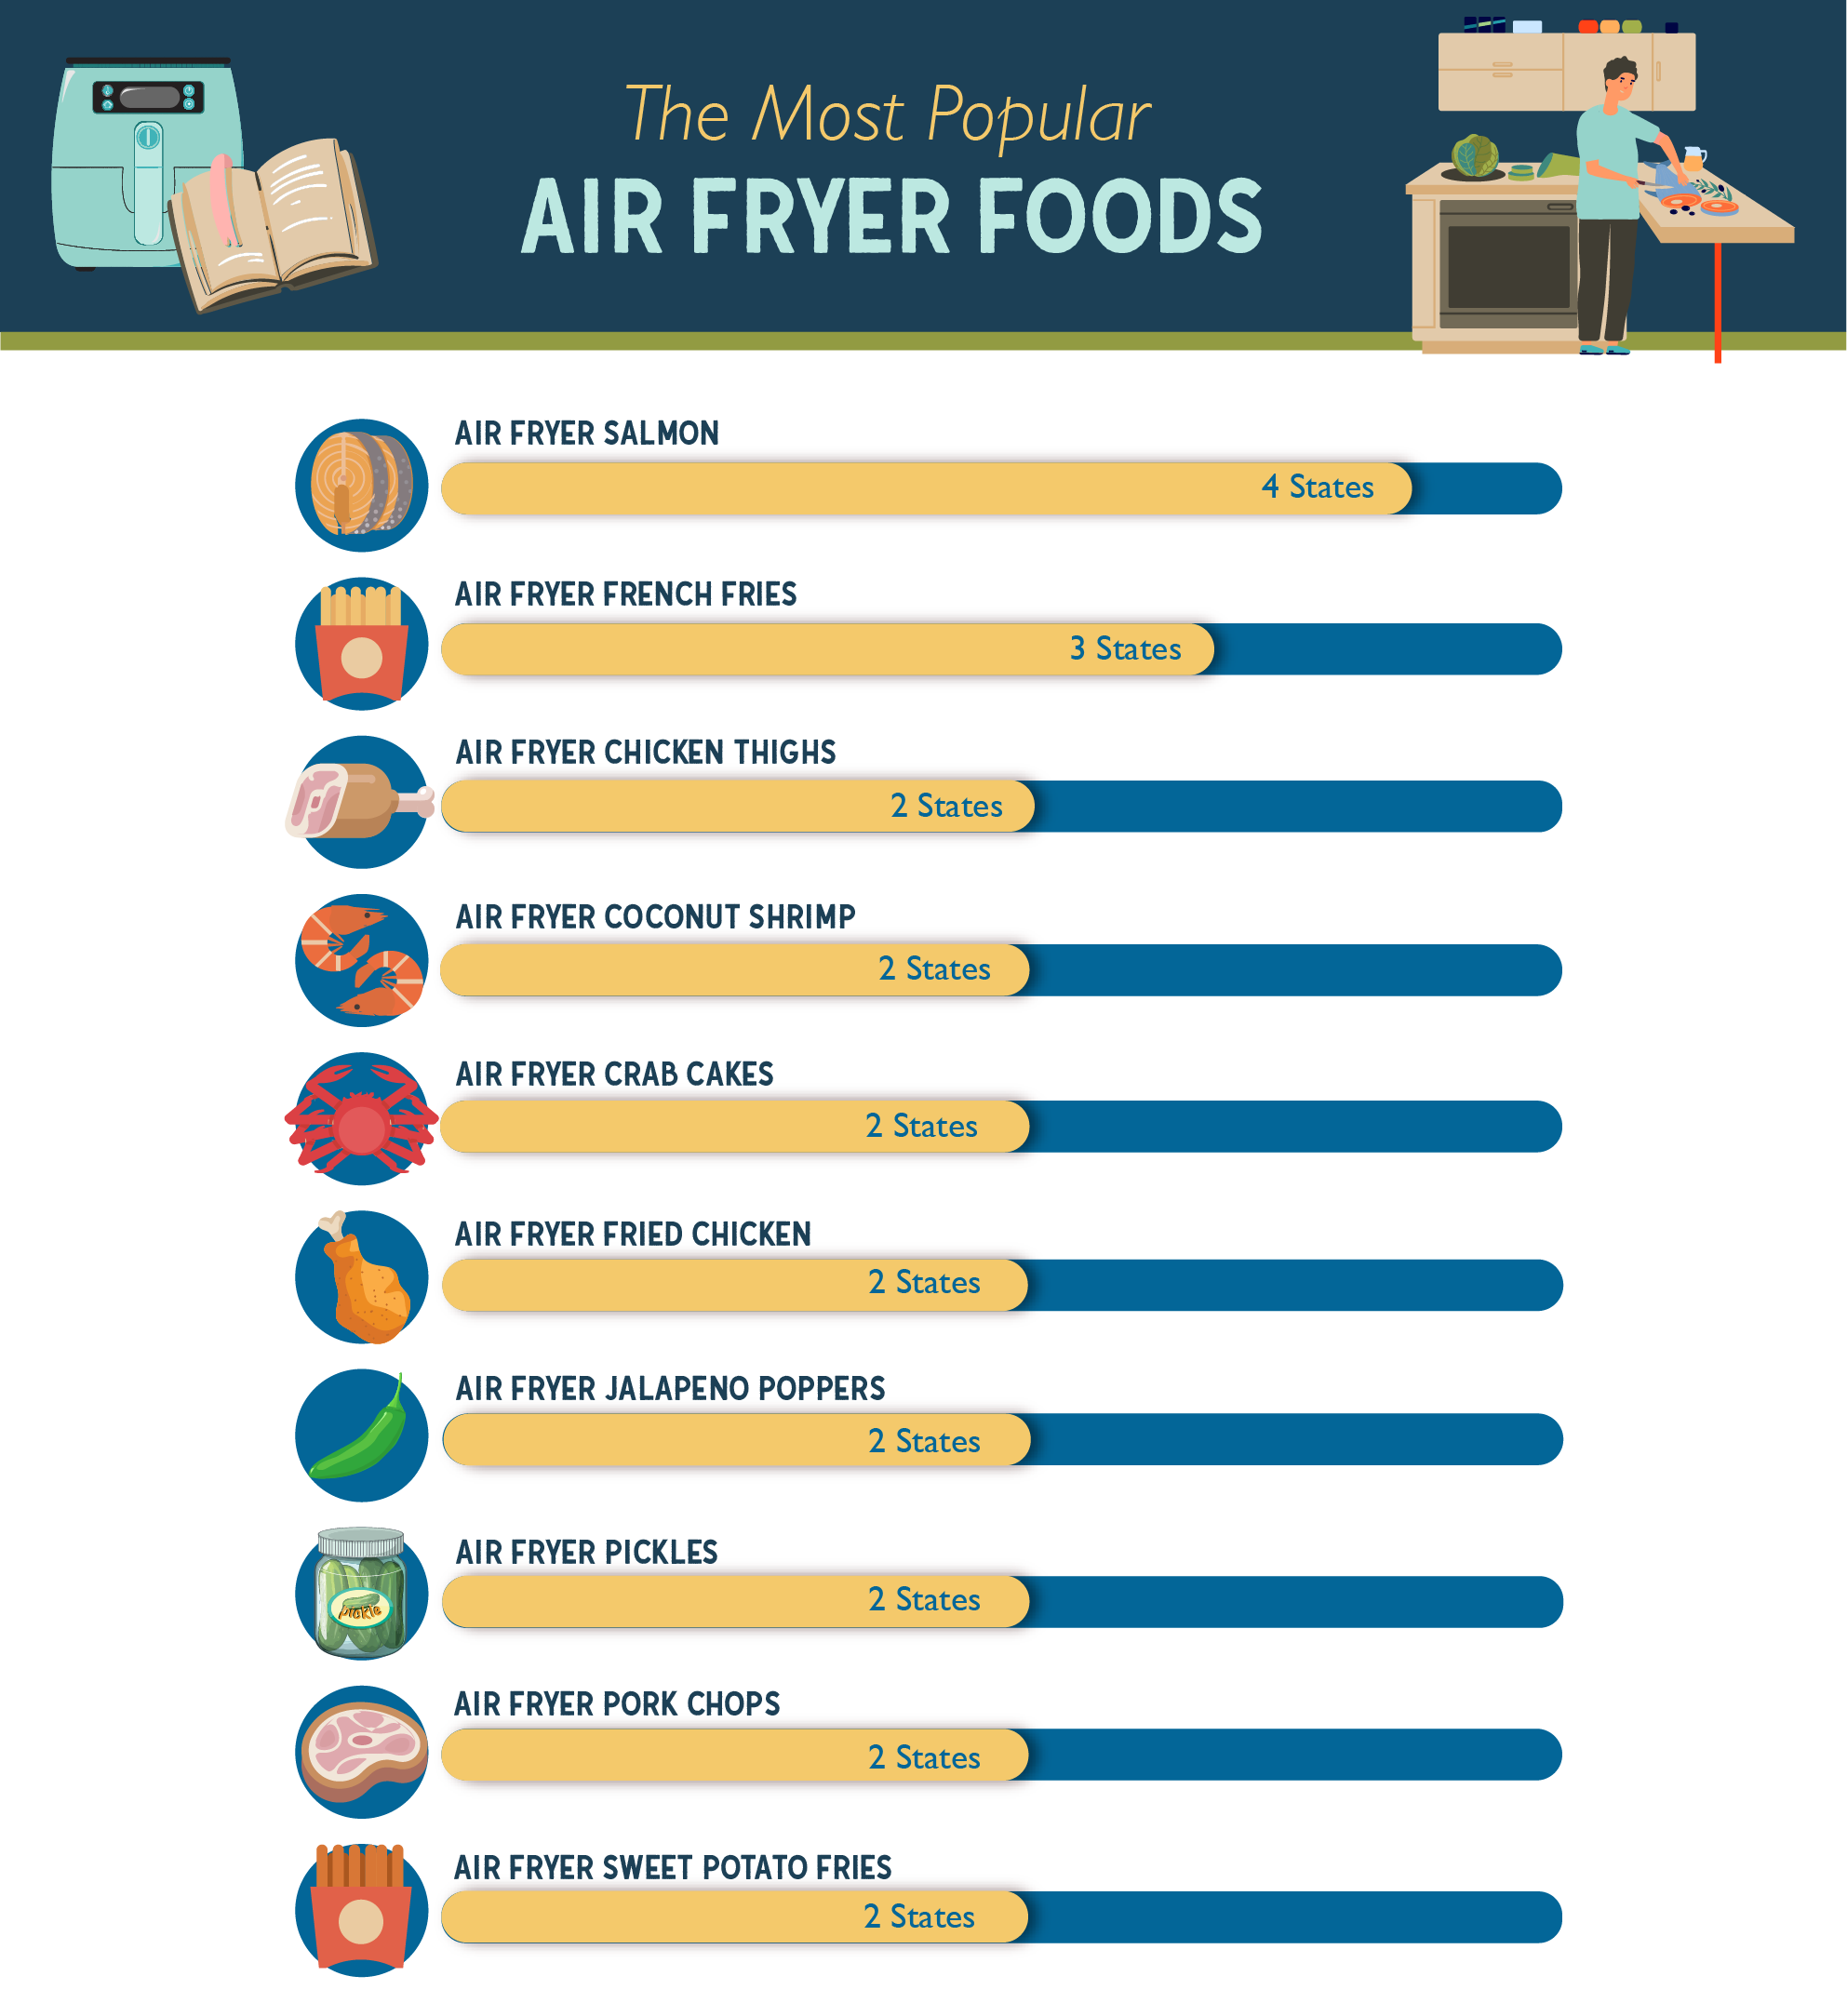 Bar chart showing the most popular air fryer foods in the US